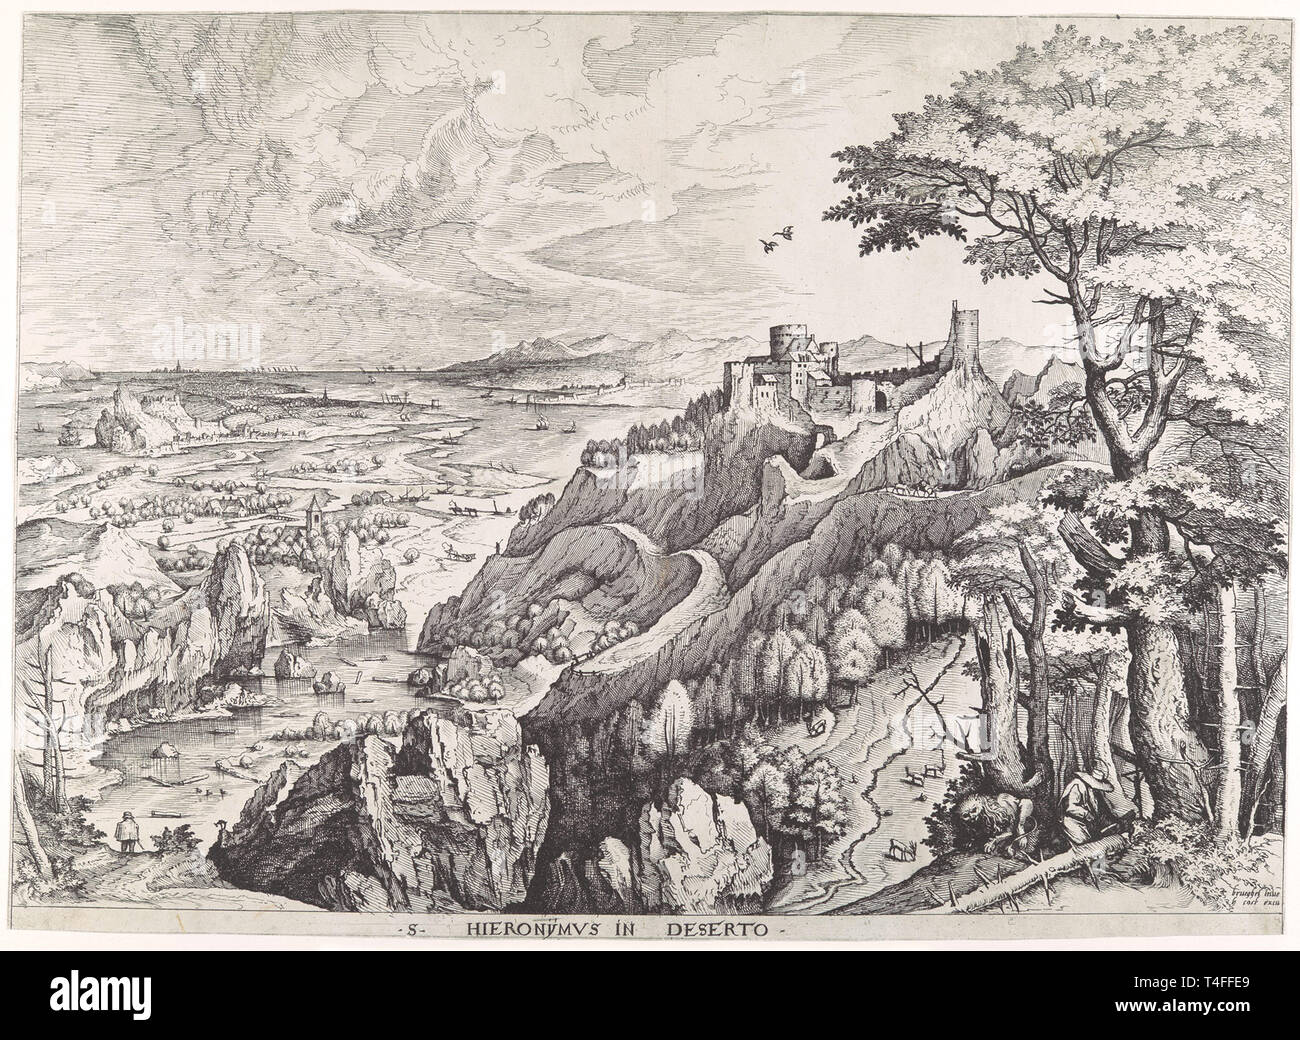 Working Title/Artist: Hieronymus in Deserto (Saint Jerome in the Wilderness) Department: Drawings & Prints Culture/Period/Location:  HB/TOA Date Code:  Working Date: ca. 1555-56 MMA Digital Photo #: DP102213.tif - Stock Image